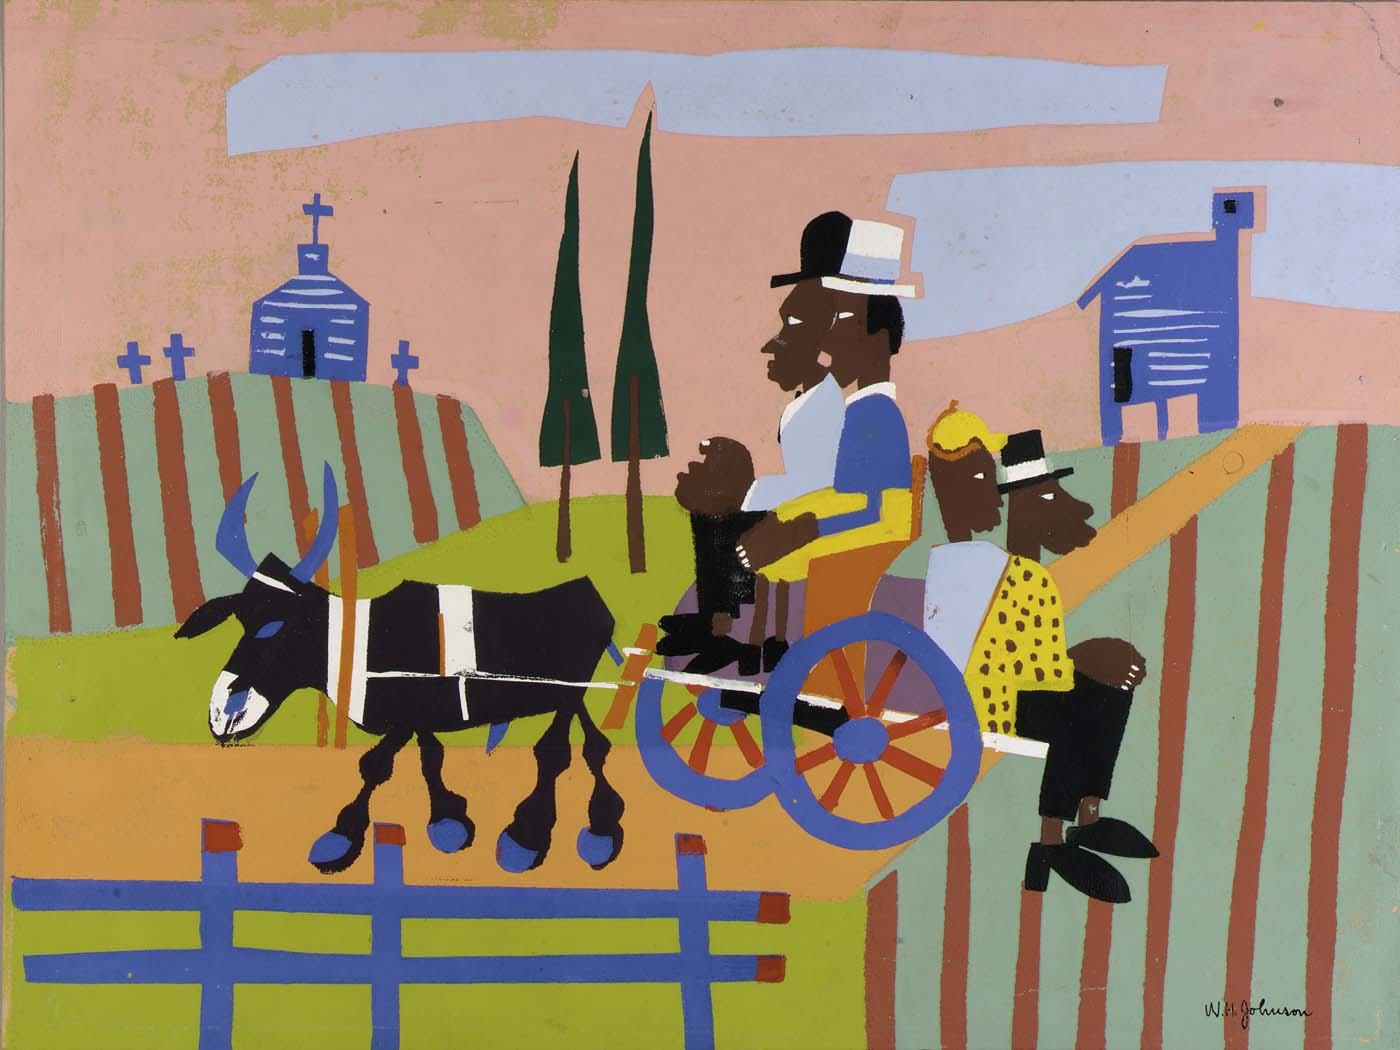 william h johnson But after that period, traditional biblical and religious subjects all but died out of  american art  william h johnson's life combined tragedy and triumph  a  year later, he won a gold medal in an art show in new york, but his luck did not  last.